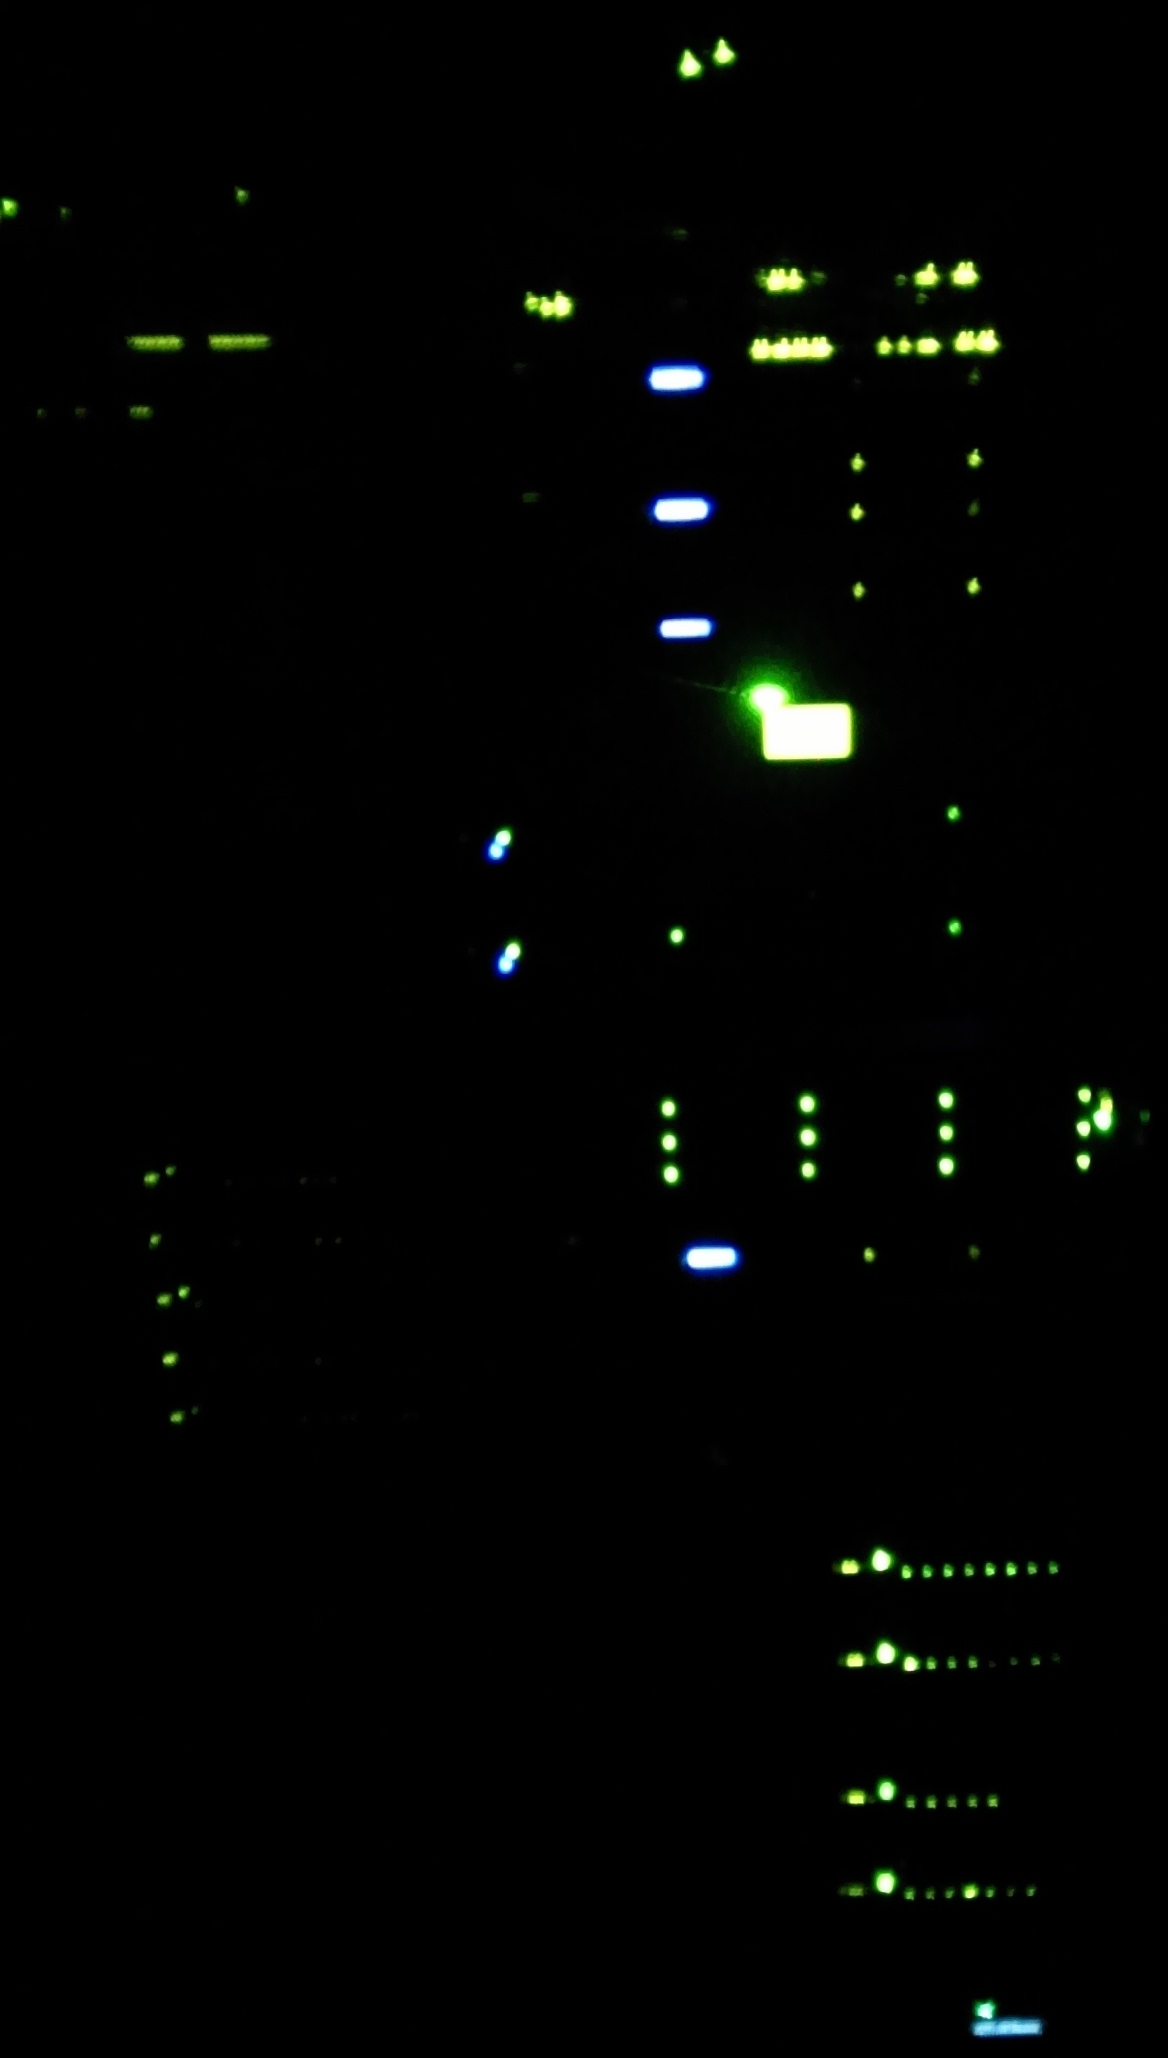 datacenter-night-01